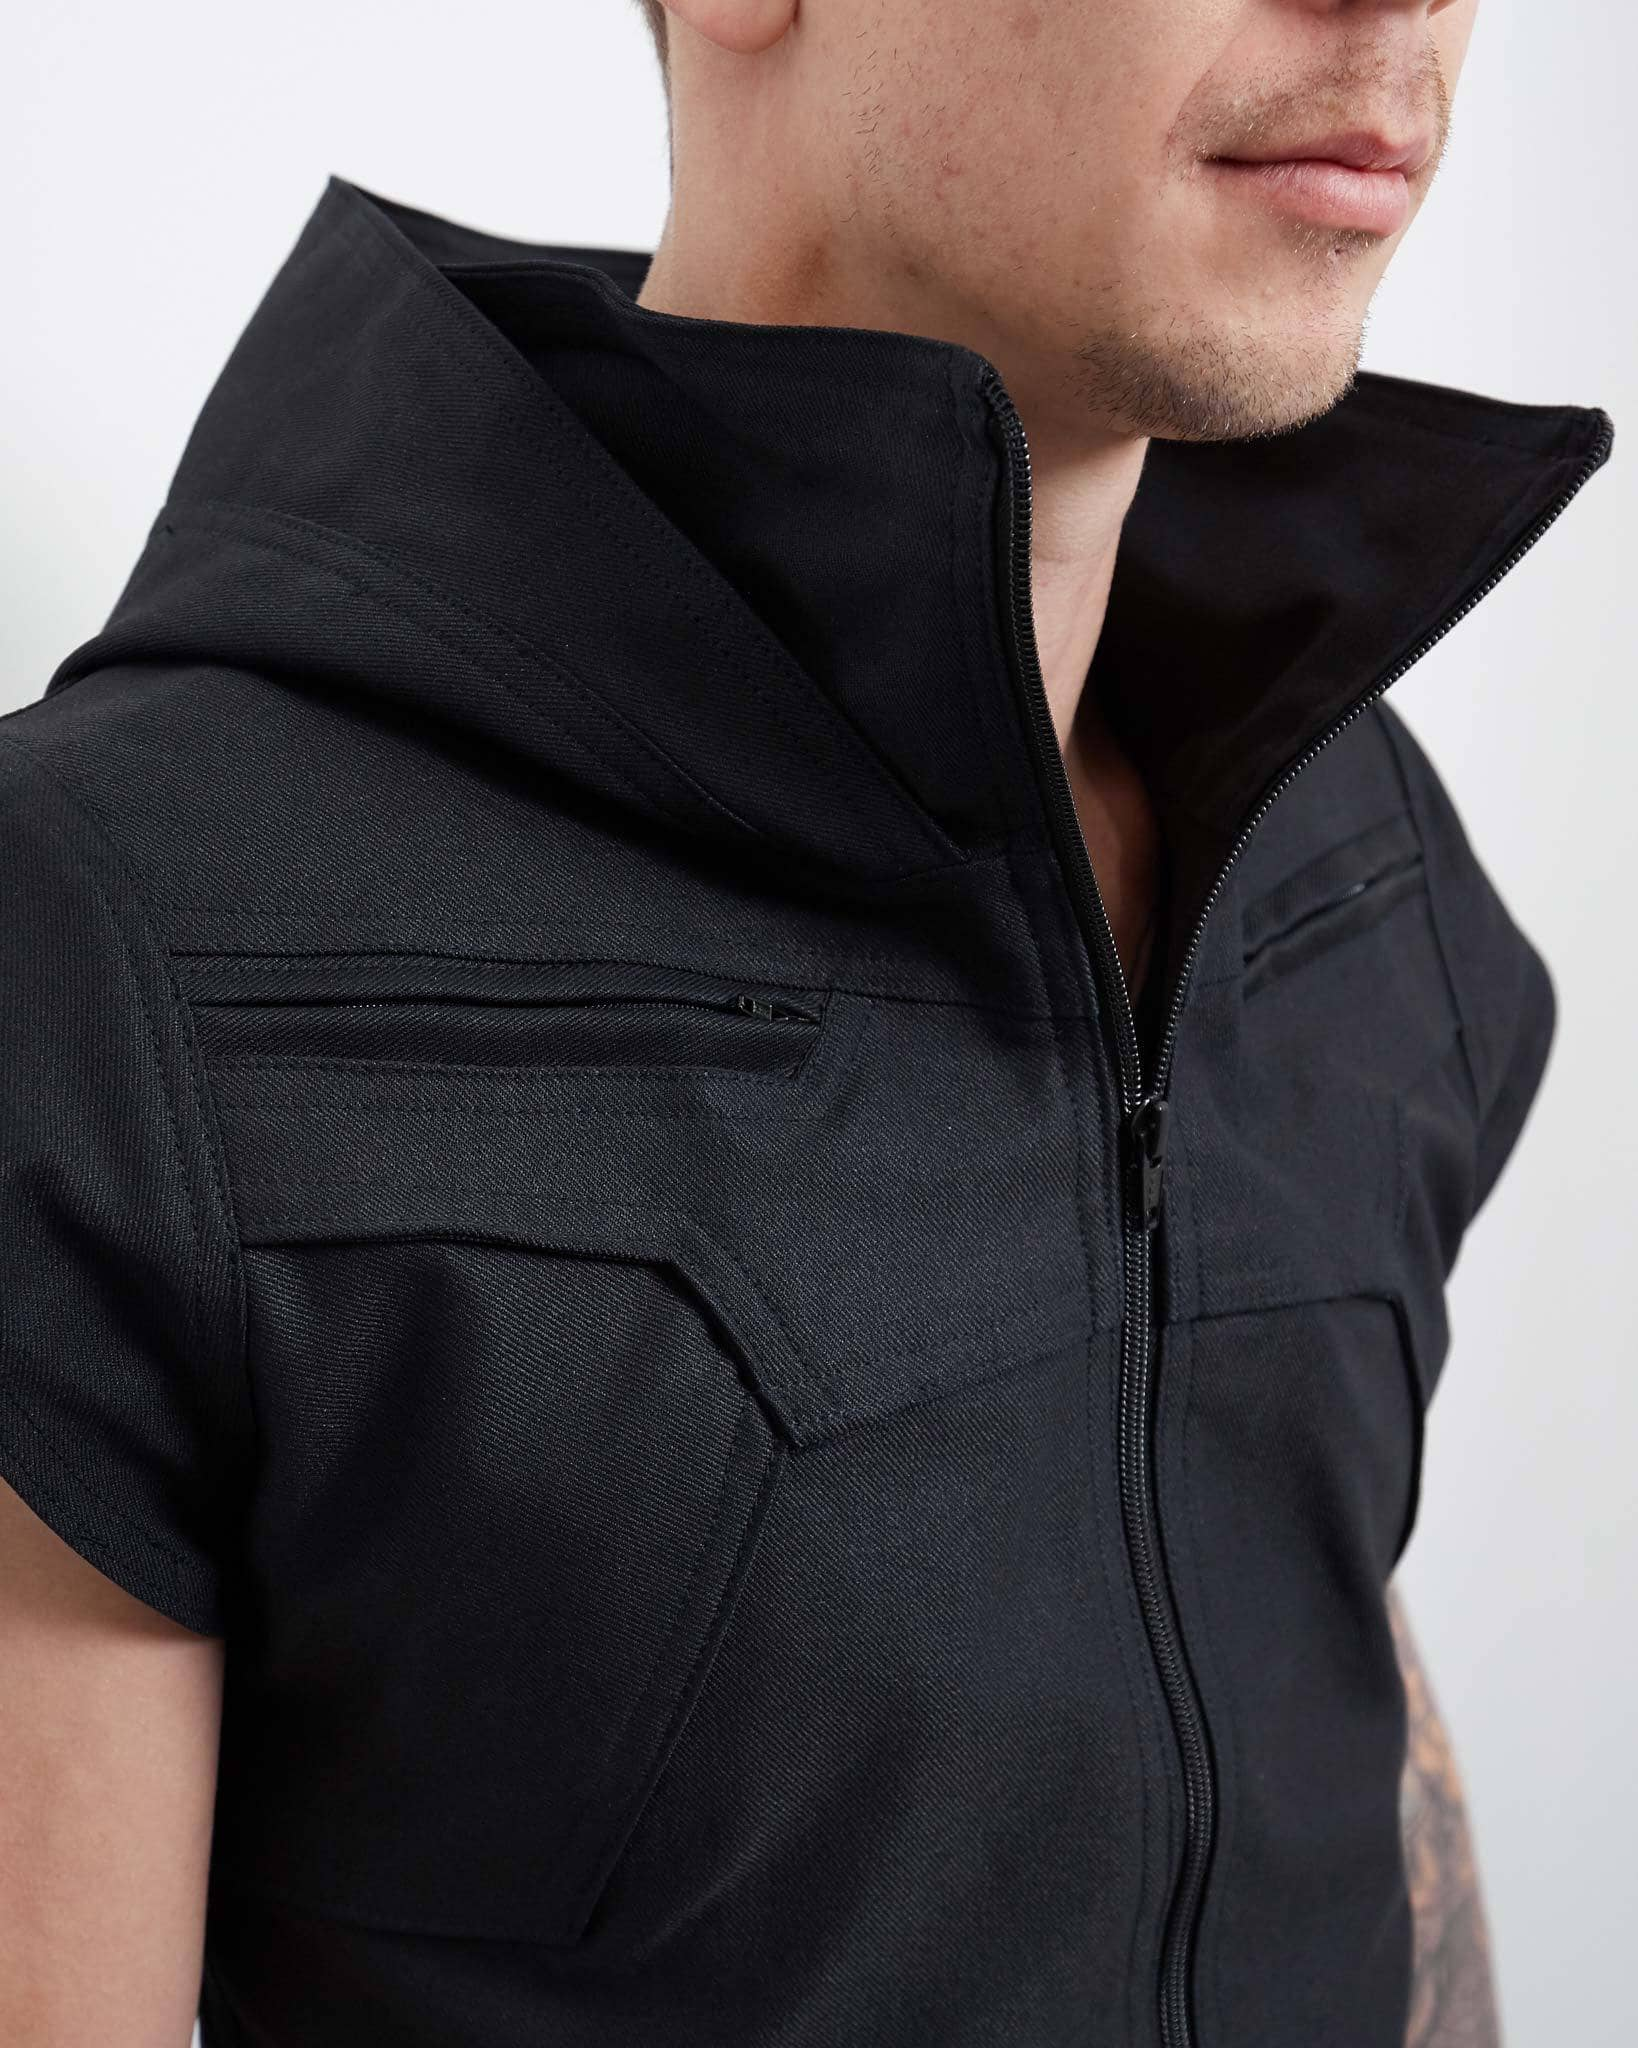 mens modern style vest with four pockets, zipped entry and deep hood